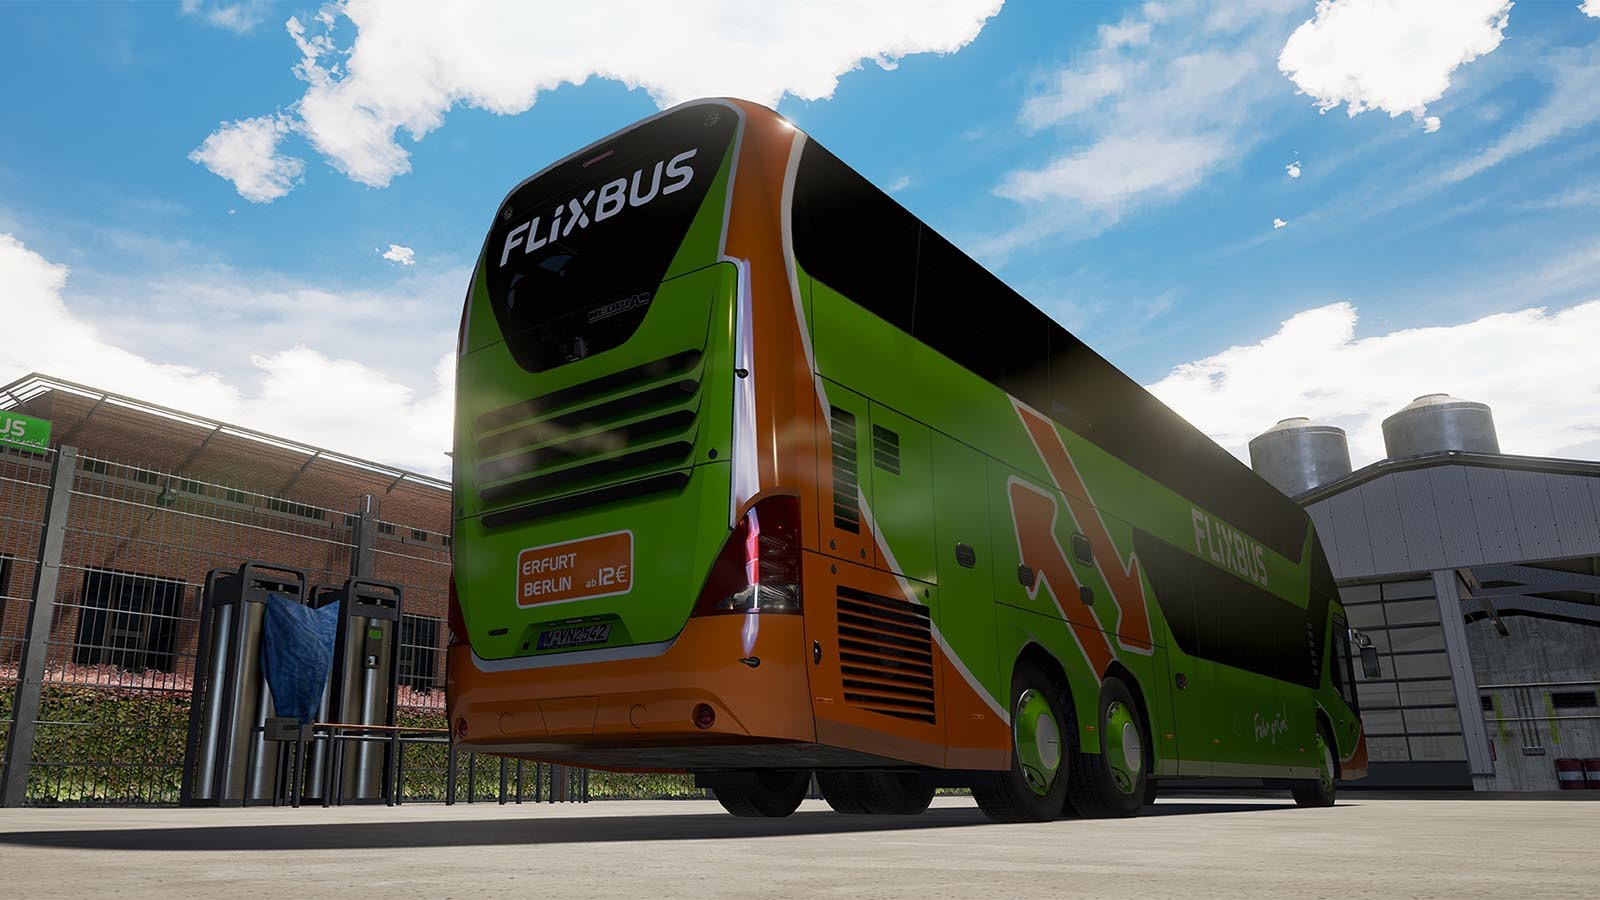 Bus Erfurt Berlin Fernbus Coach Simulator Add On Neoplan Skyliner Steam Cd Key For Pc Buy Now